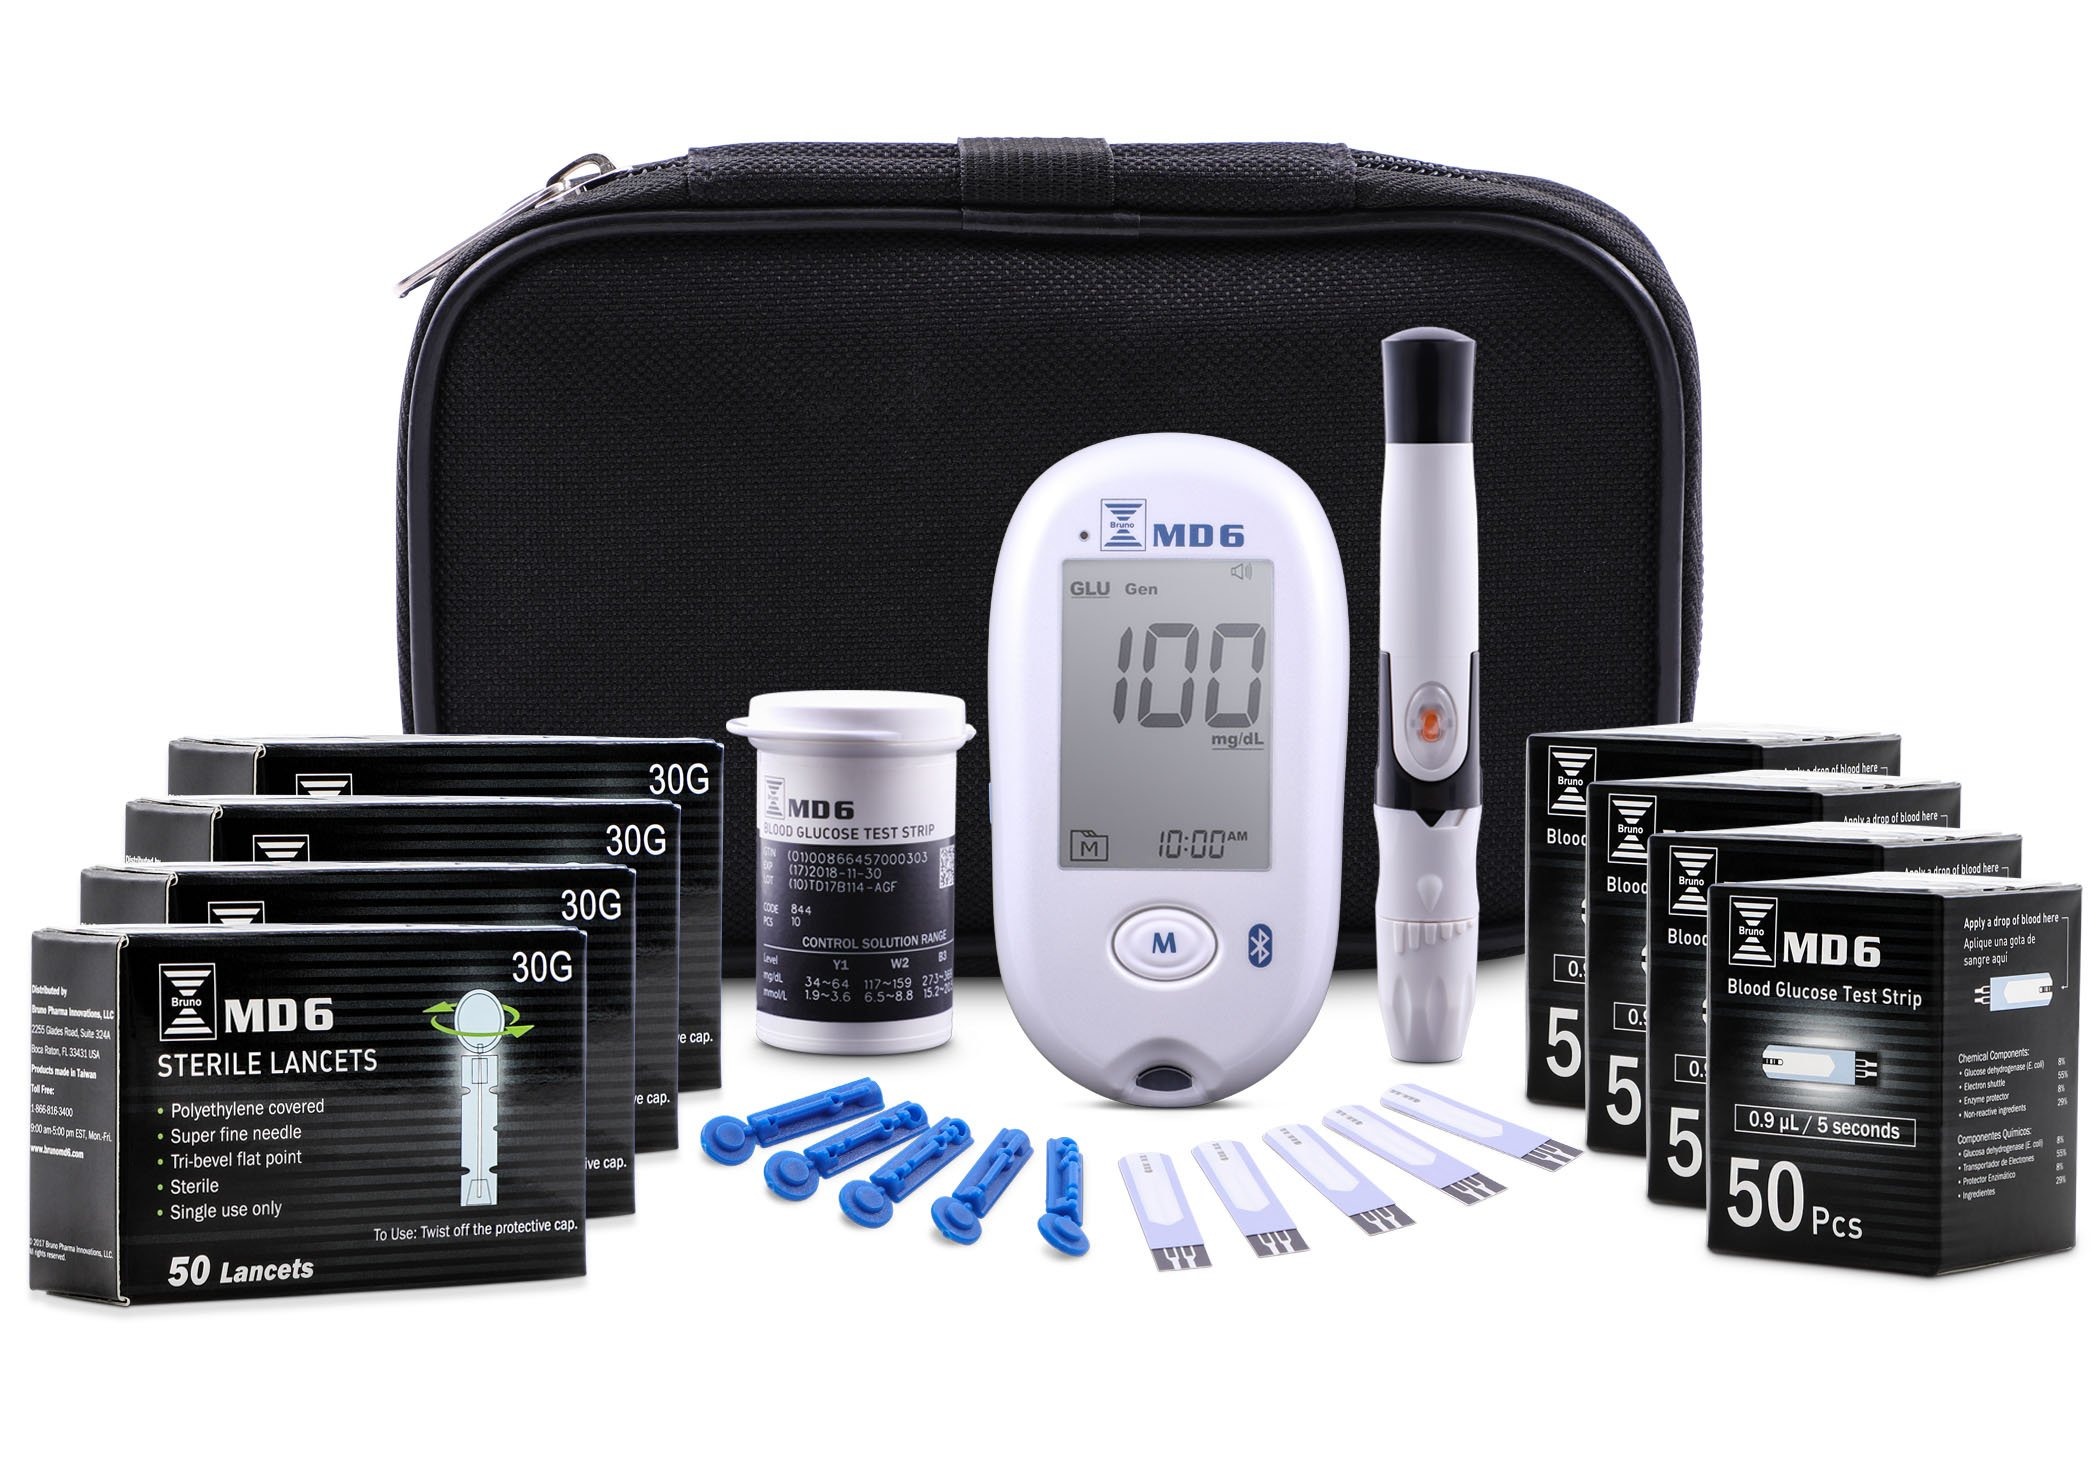 Bruno Pharma MD6 Diabetes Blood Glucose Monitor Kit | Complete Diabetic Meter Testing Kit with Travel Case, Lancing Device, 200 Blood Sugar Test Strips + 200 Lancets | Fast Results + 5 Year Warranty